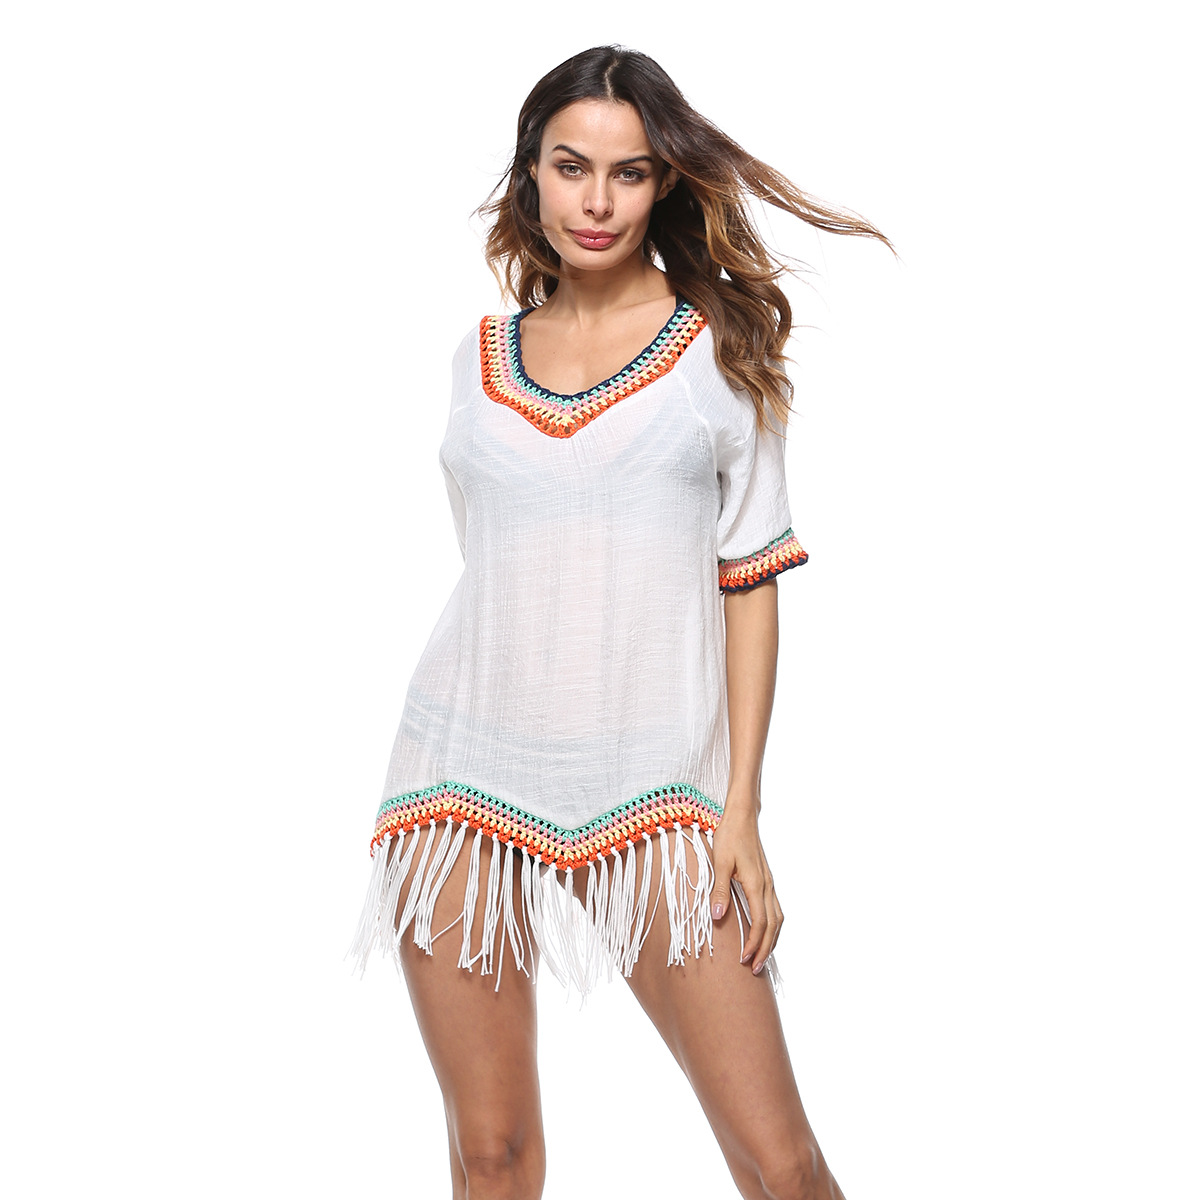 Bath Suits Dress Beach Cover Up Bikini Outings Tunics Womens Bather Tunic Cape 2018 Upper Garment Animal Acetate Sierra Surfer